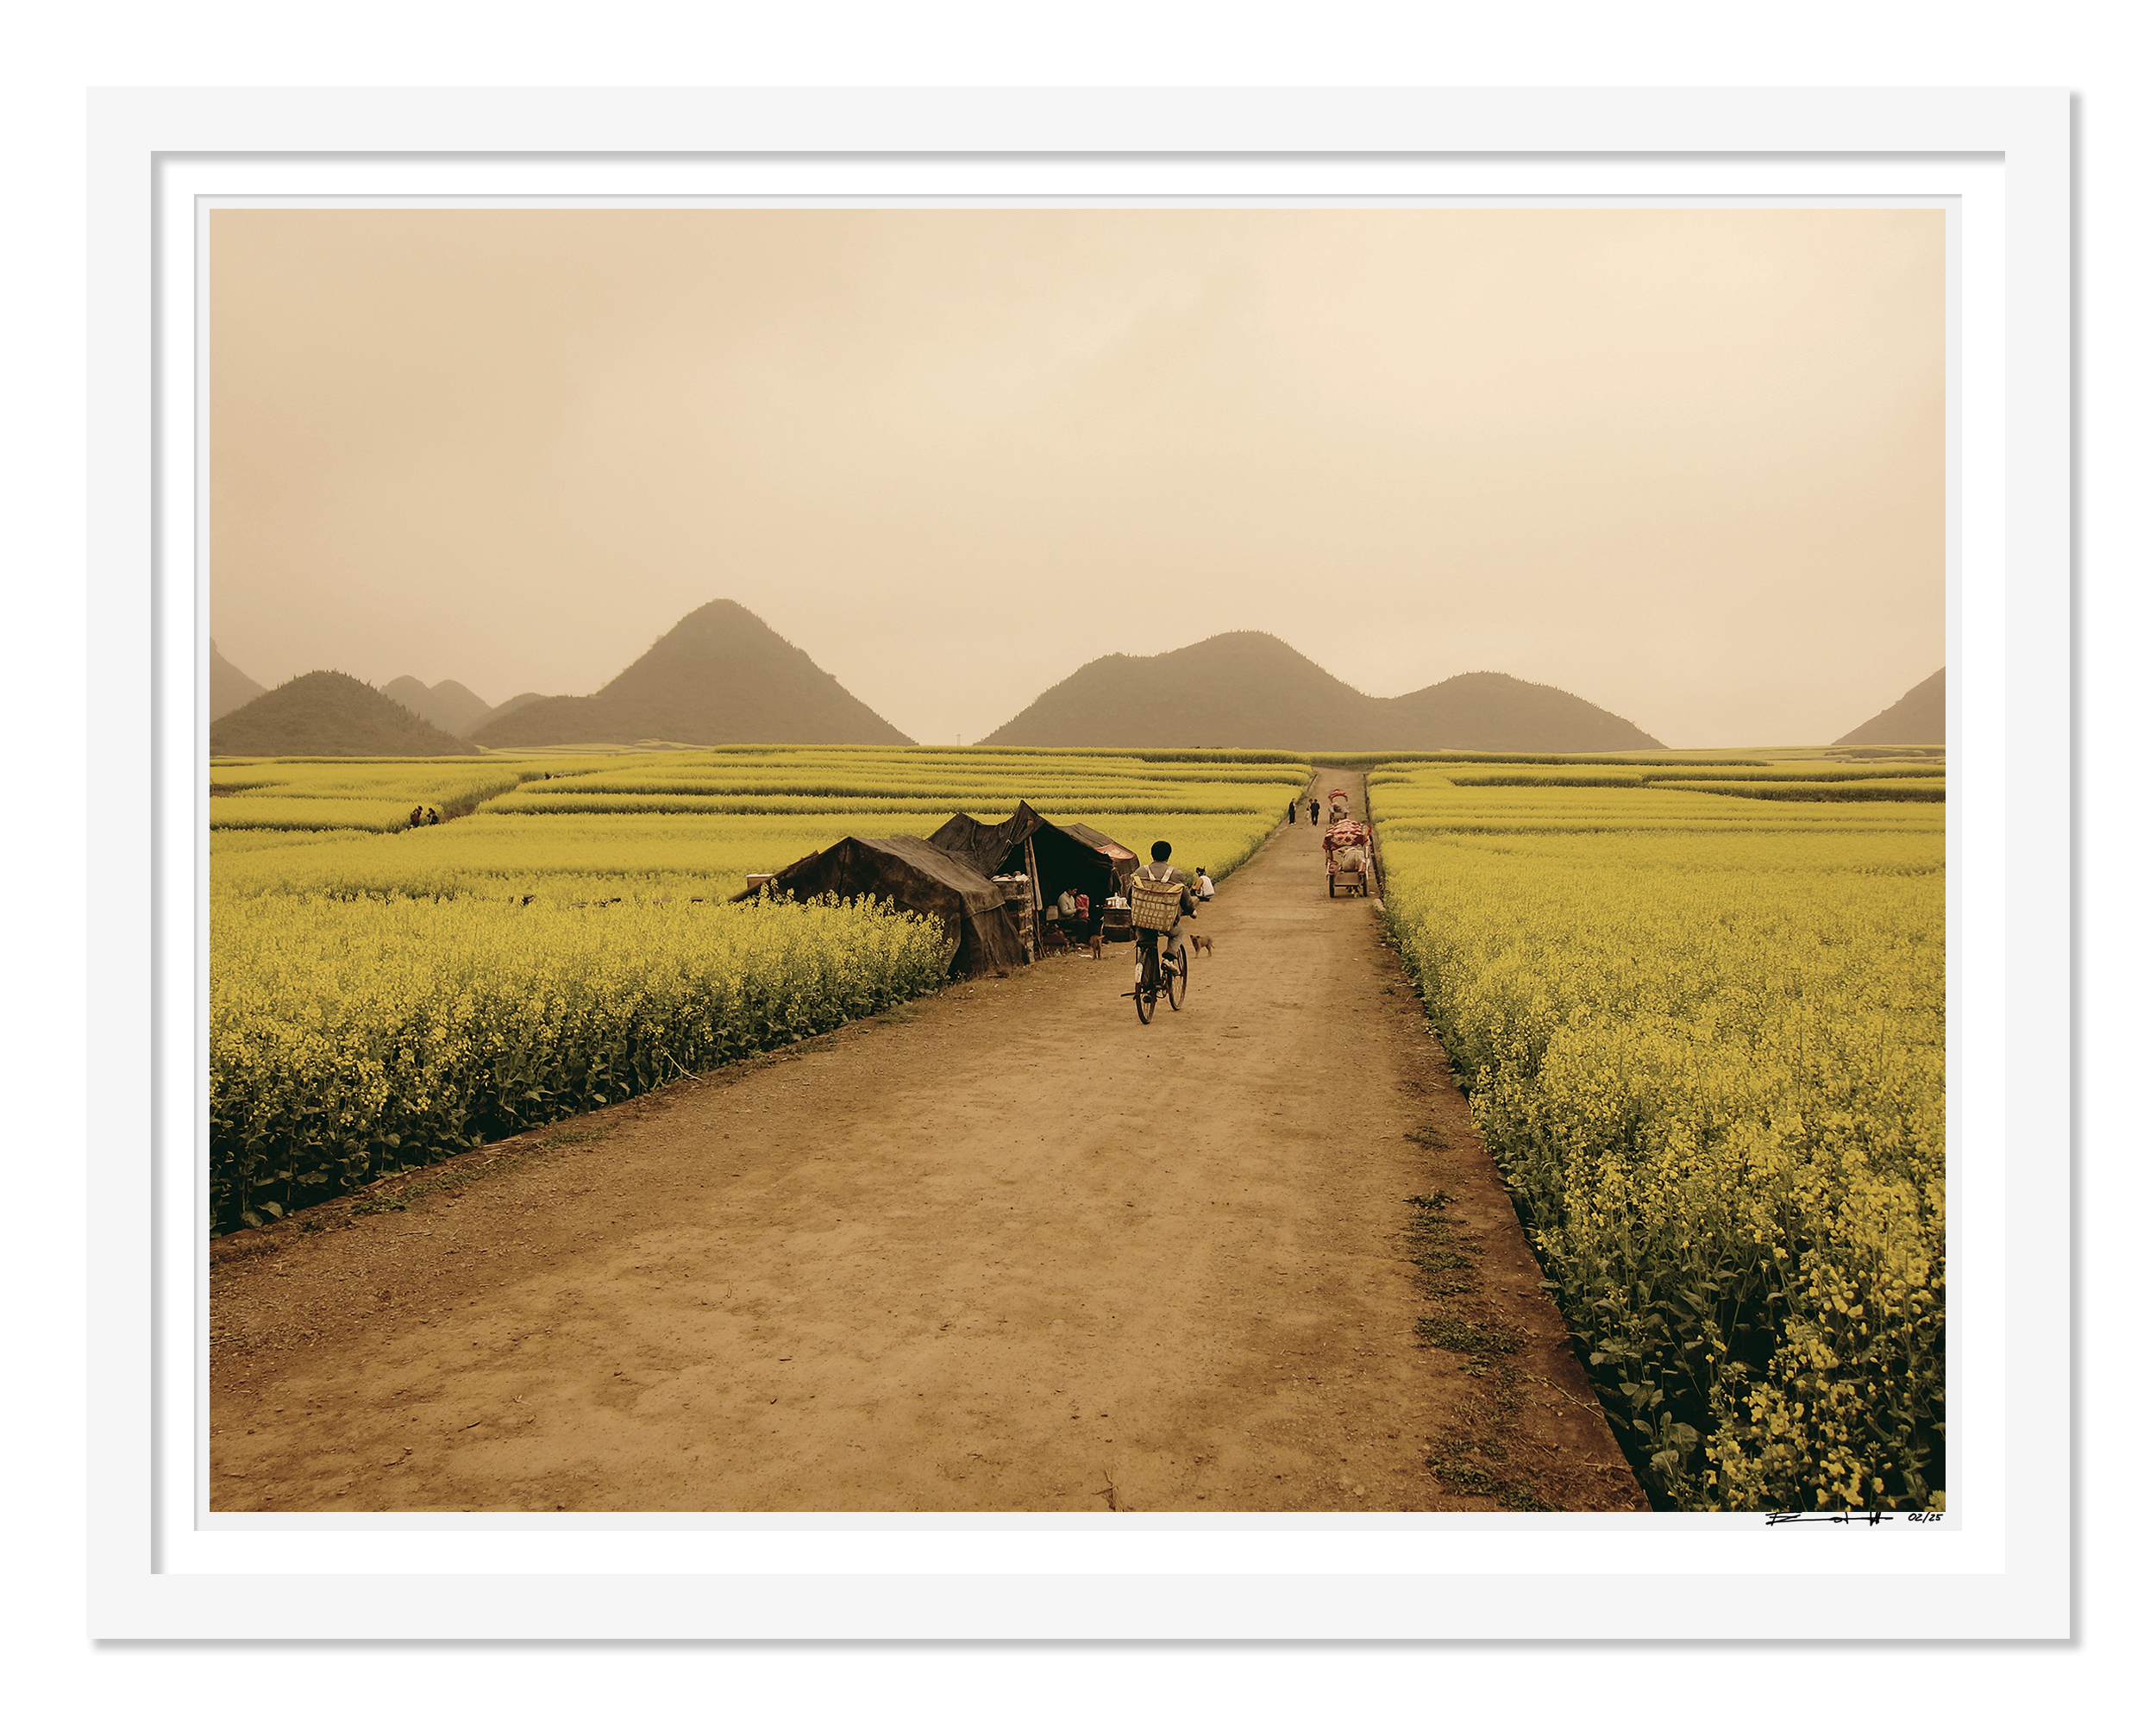 LUOPING FIELDS YUNNAN limited edition print